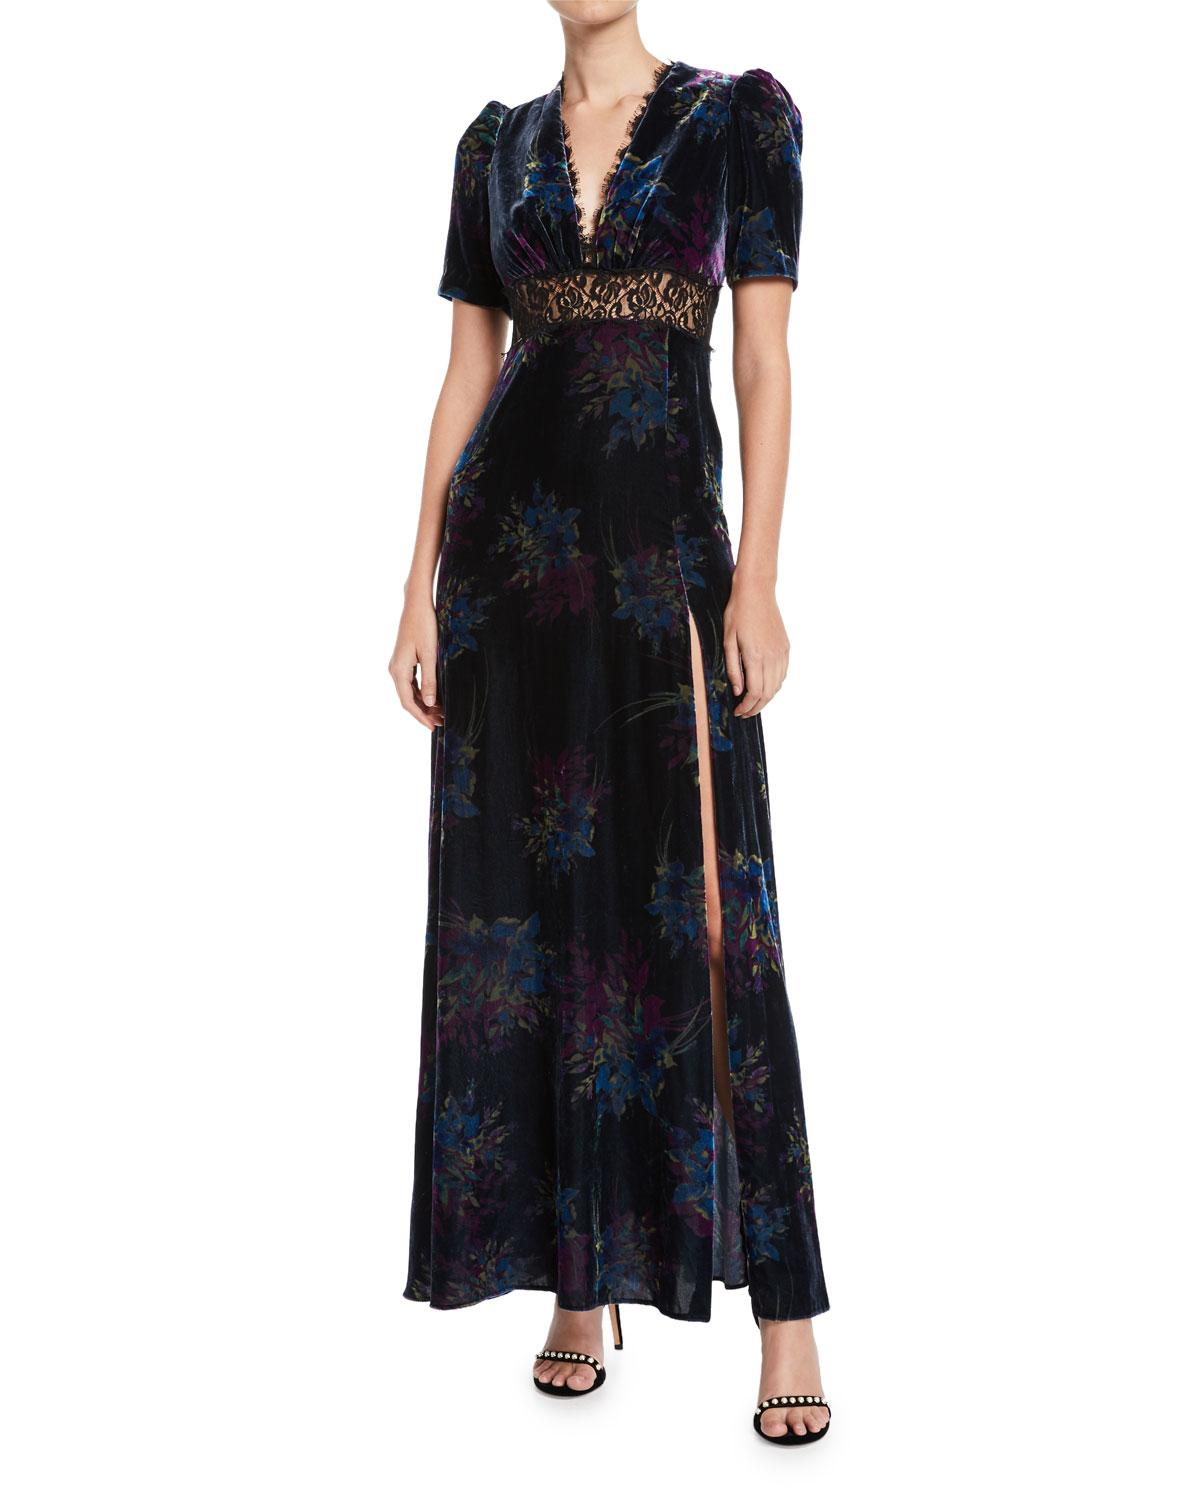 Jill Jill Stuart V-neck Velvet & Lace Gown In Black Multi